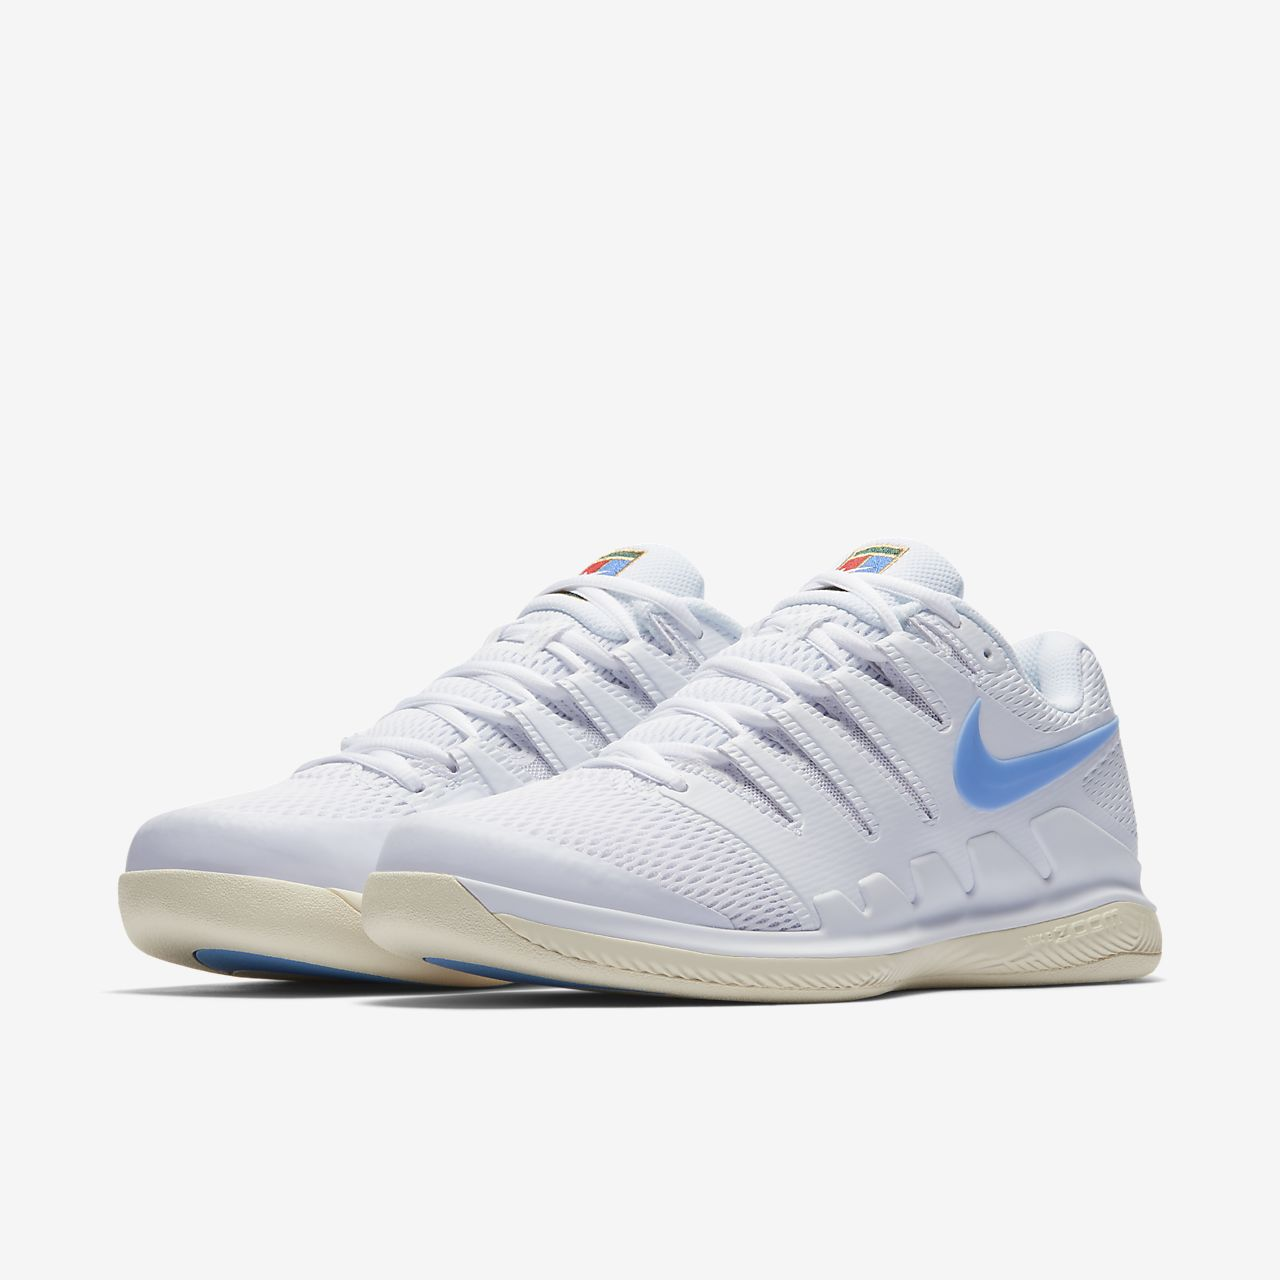 hot sale online 797db f2624 ... discount code for nike zoom air zoom nike vapor x carpet herren  tennisschuh de777f bd654 7a967